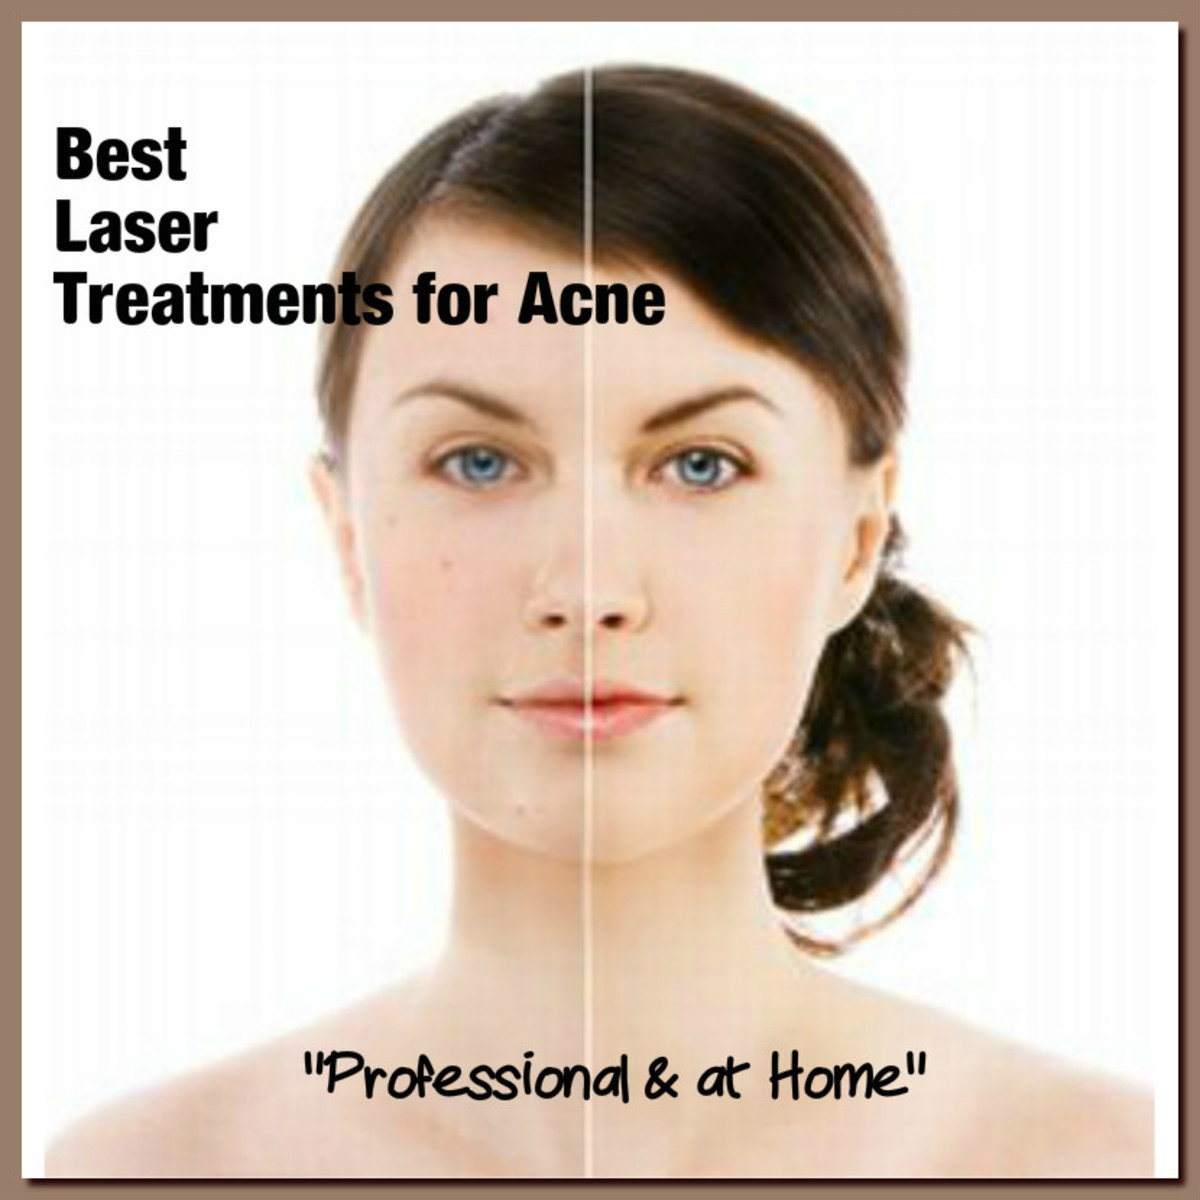 Best Laser Treatment for Acne, Top 3 at Home Acne Devices